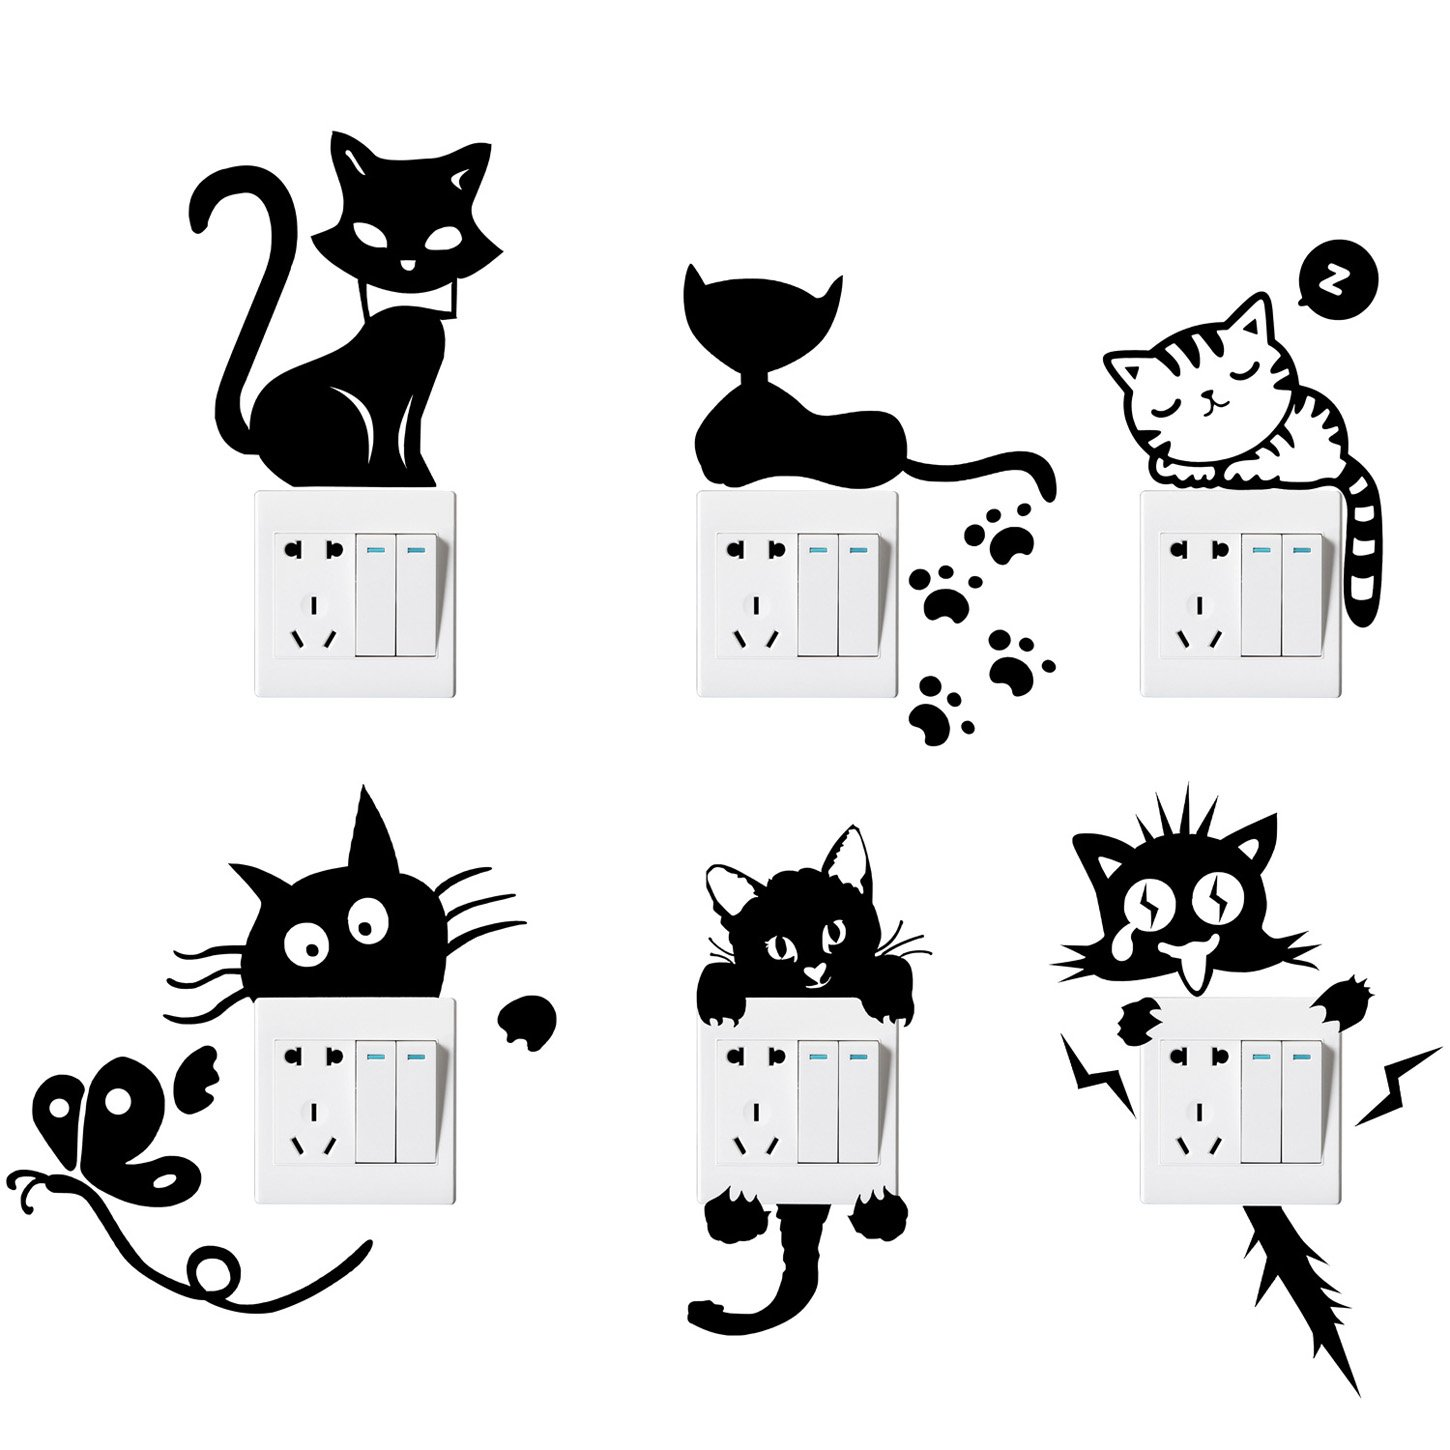 Waterproof and Removable Honbay 9-Piece Cute 3D Cat Wall Decals Living Room Bedroom Decoration Animal Wall Stickers Toilet Lid Stickers Refrigerator Stickers